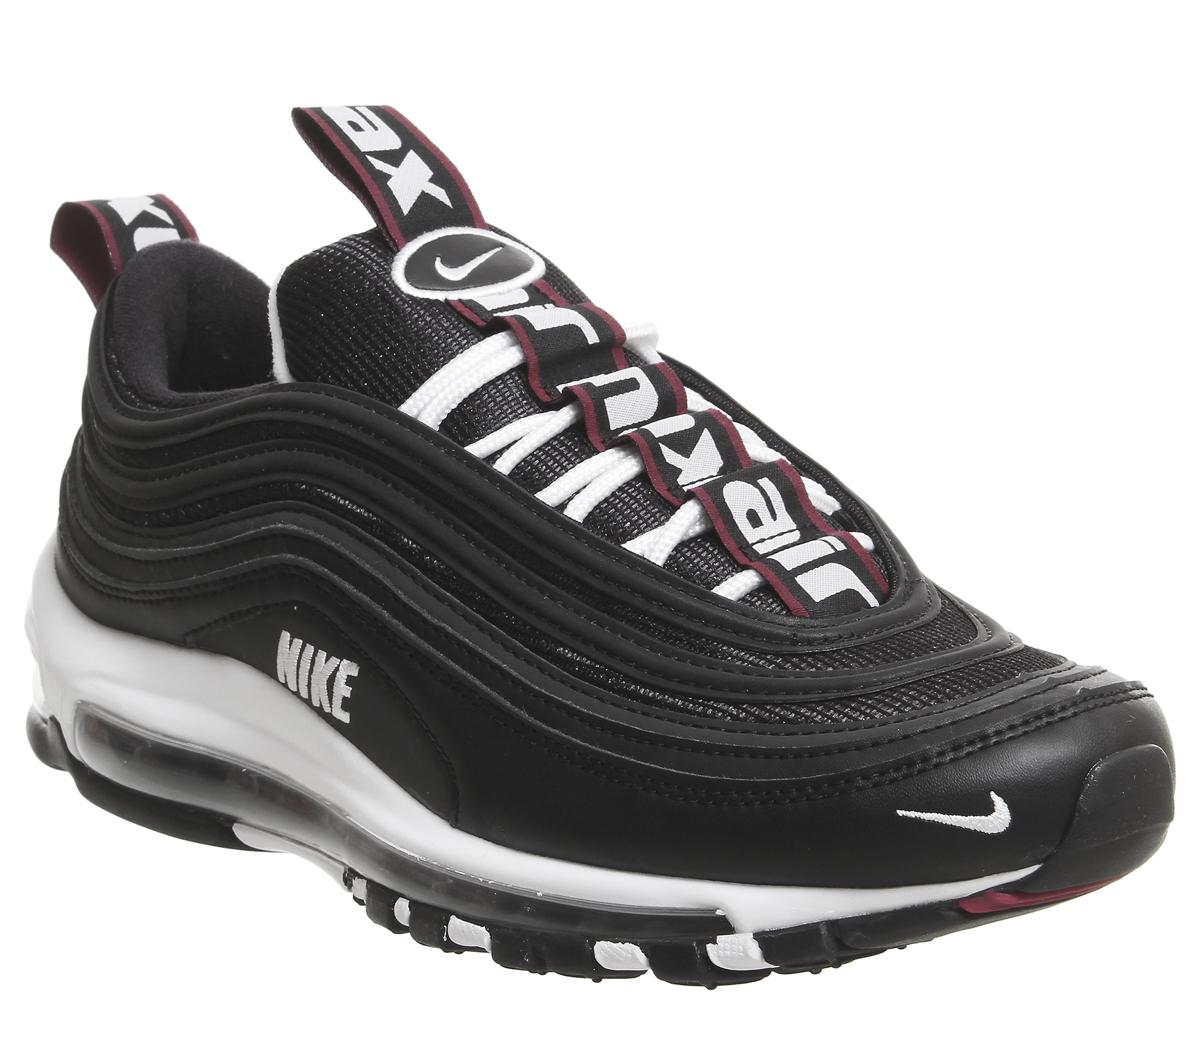 Men's Nike Air Max 97 Blackvarsity Red